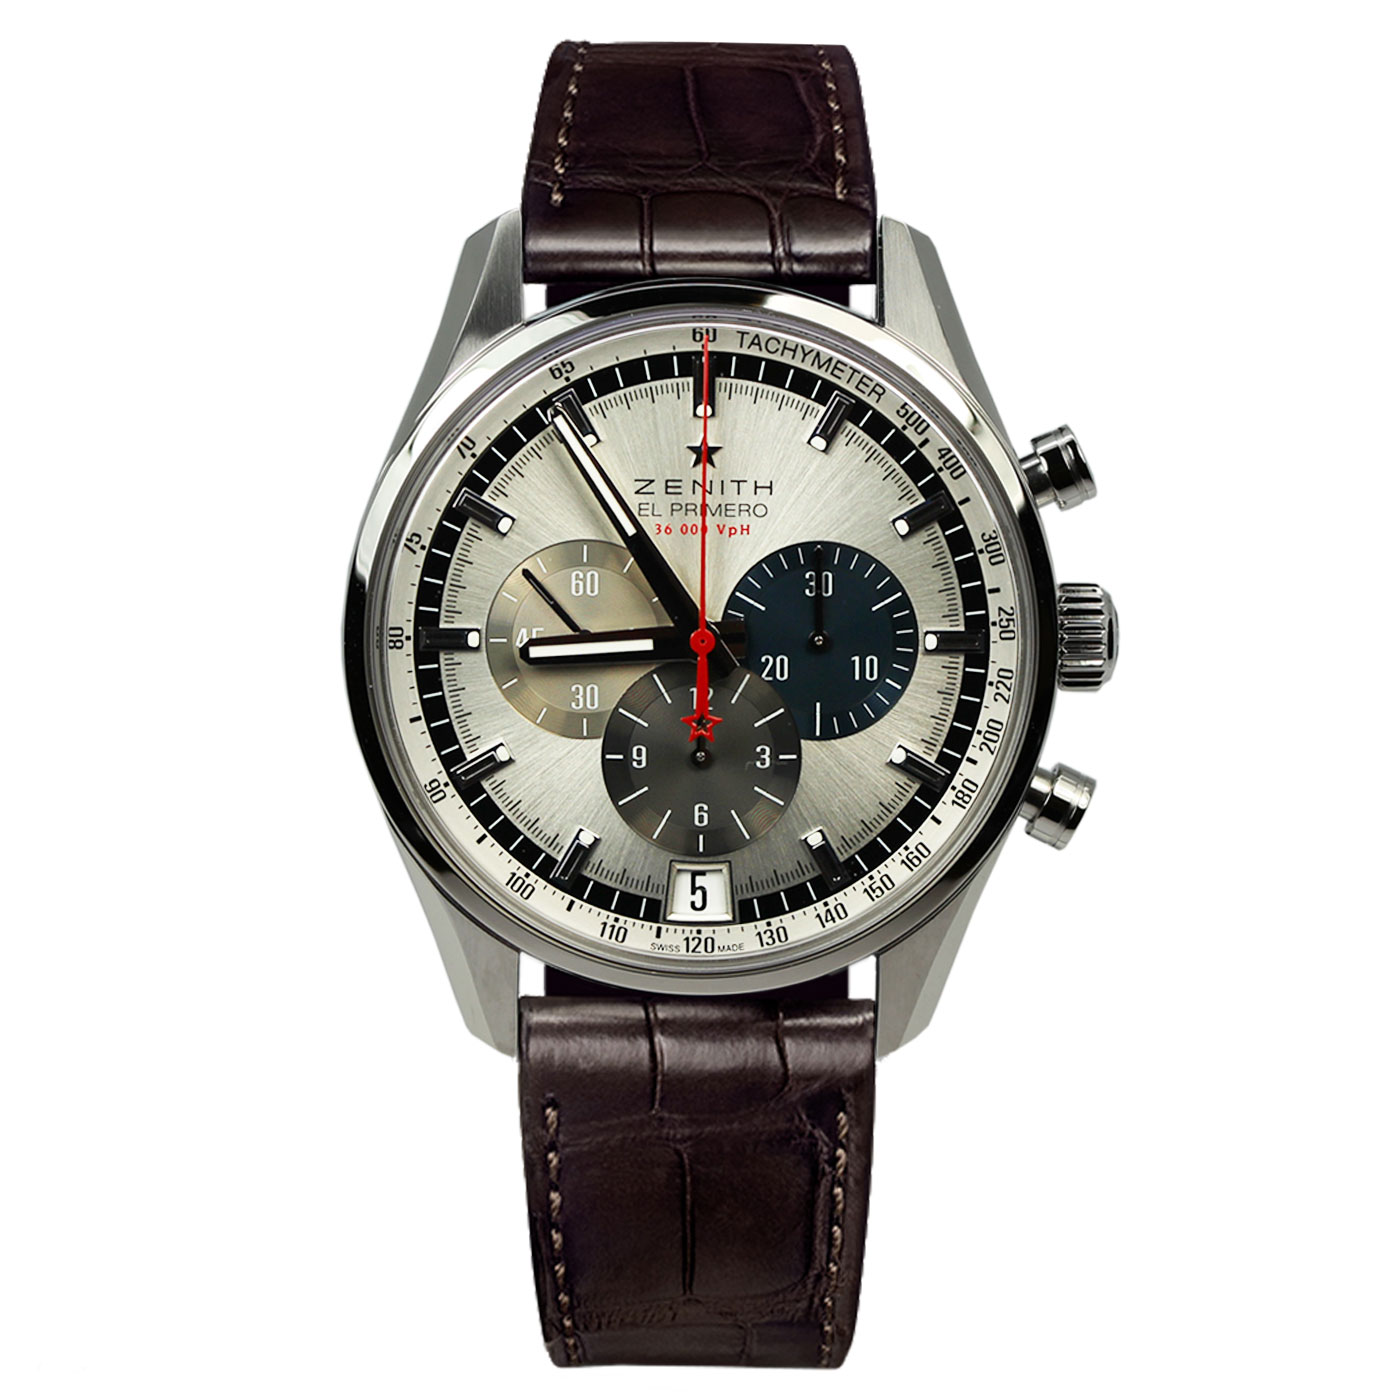 zenith el primero watches of mayfair london. Black Bedroom Furniture Sets. Home Design Ideas